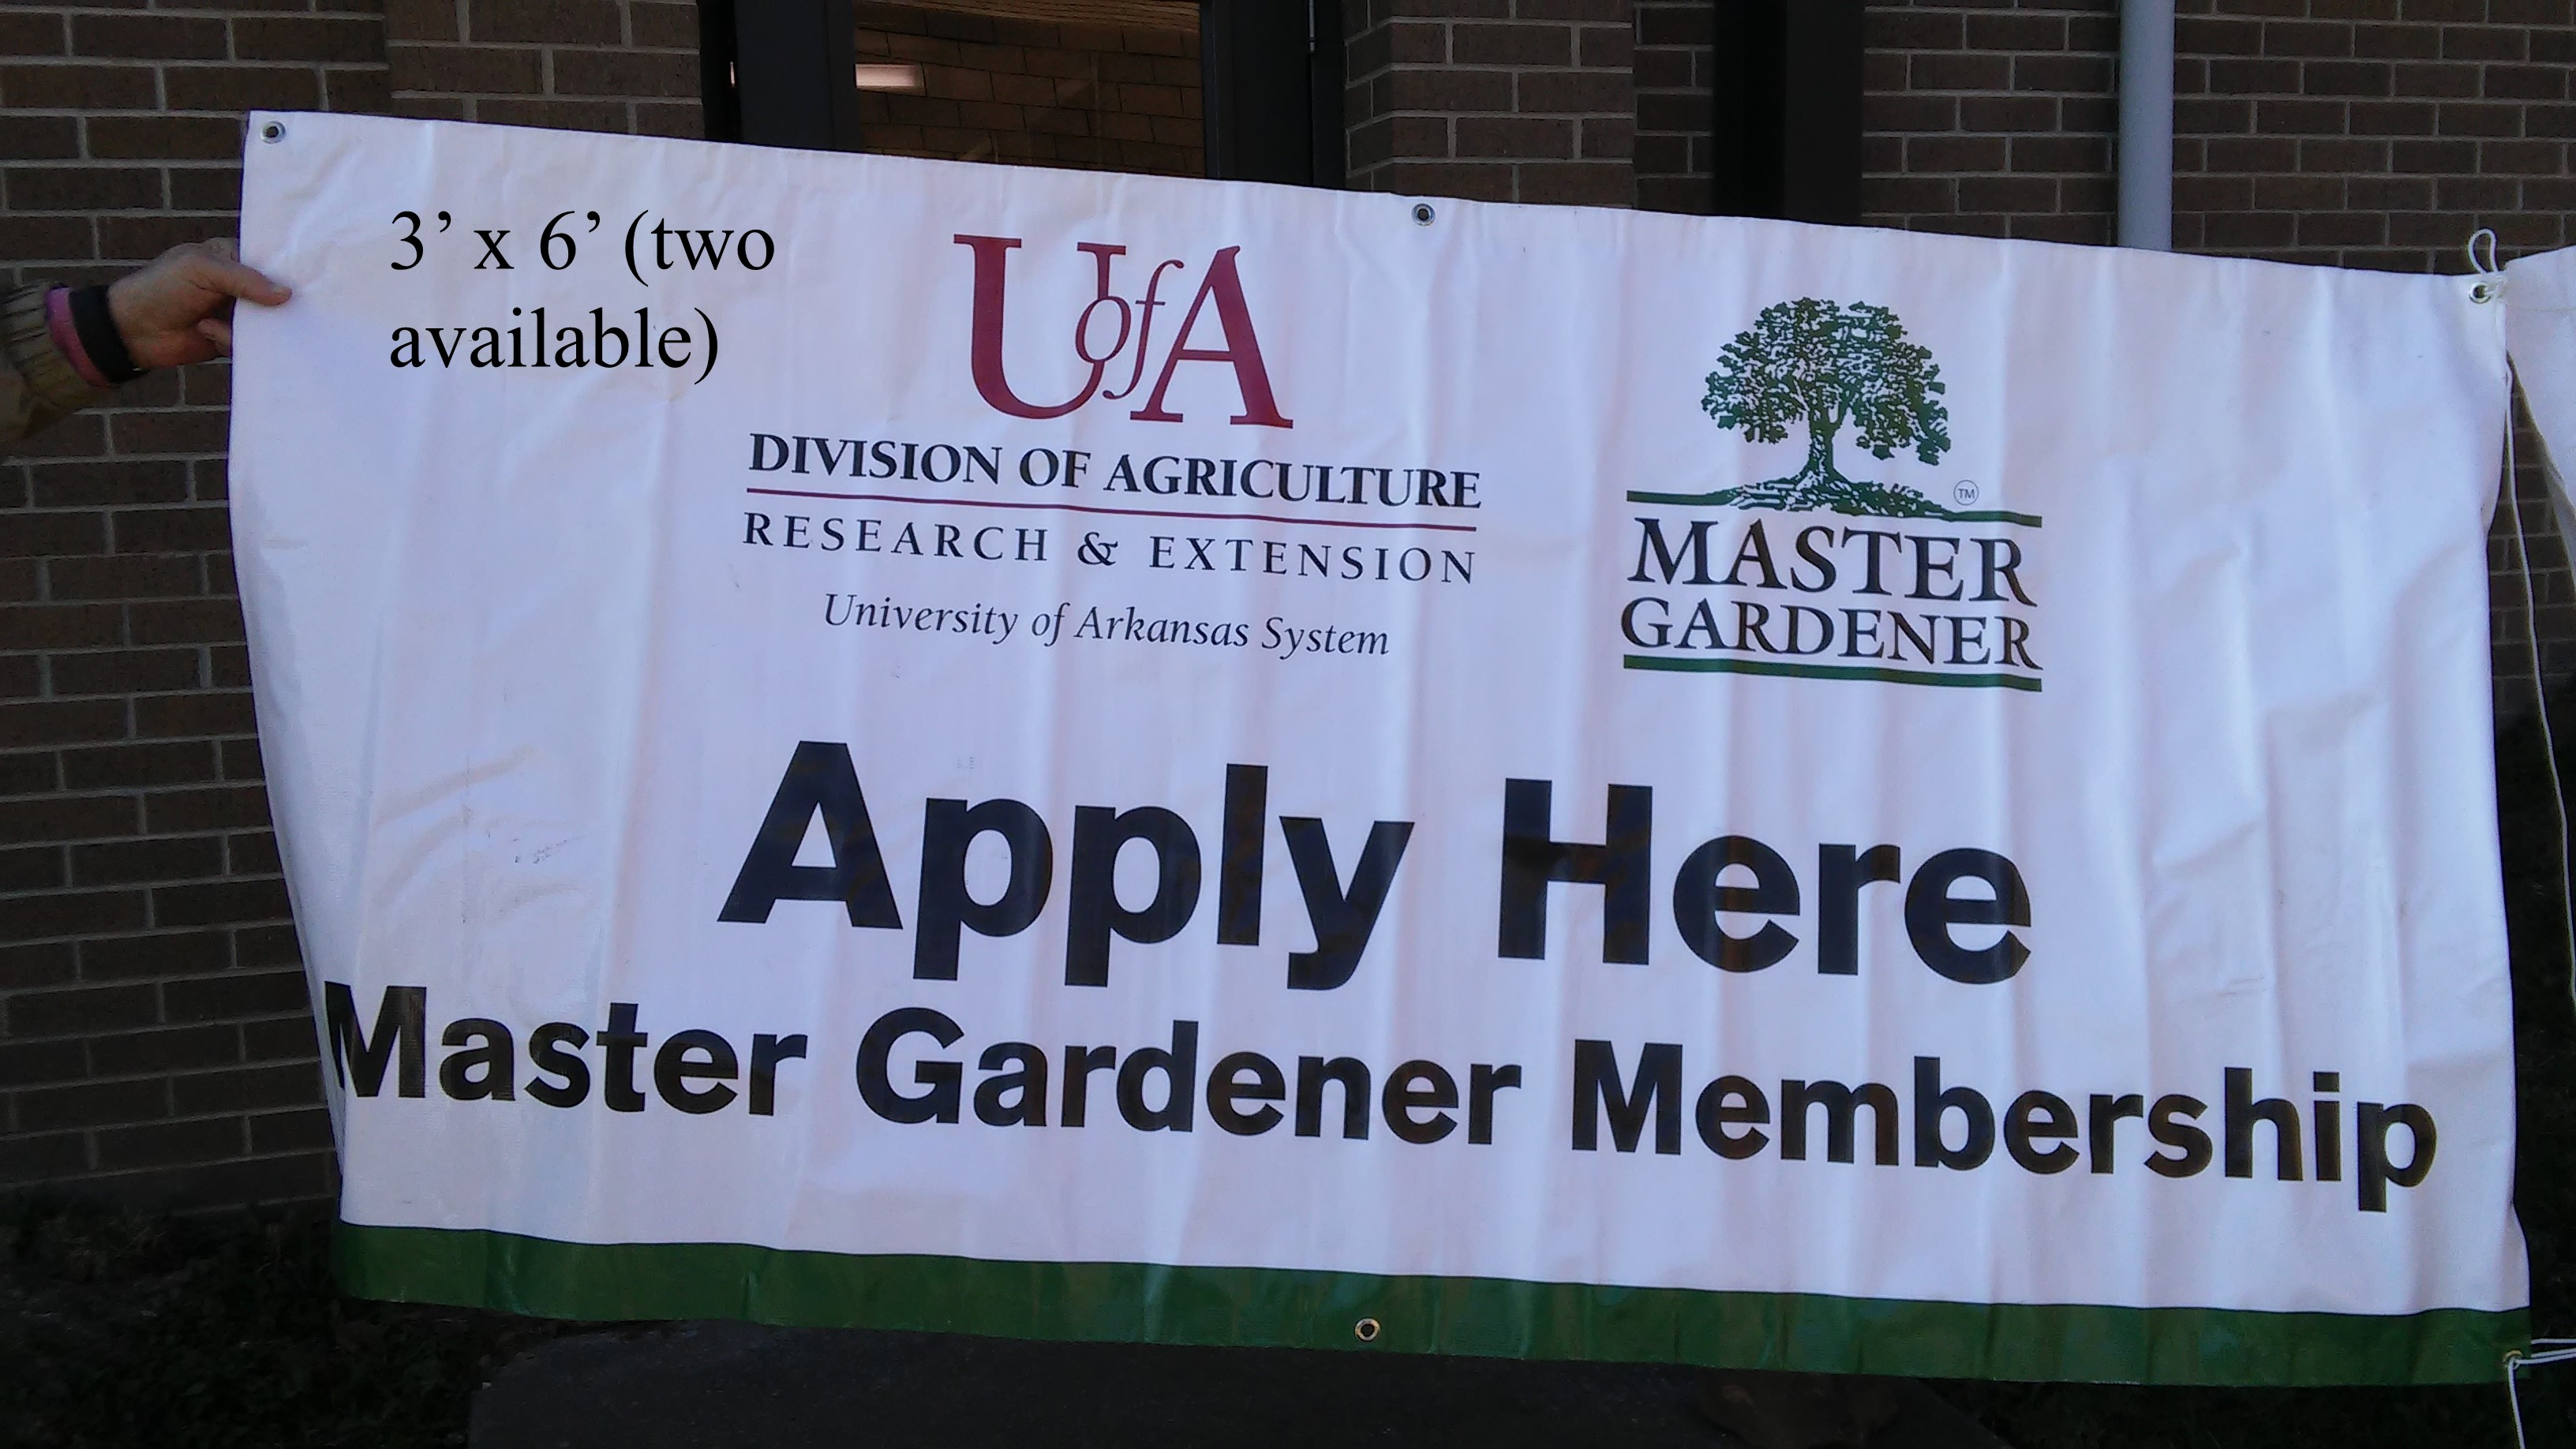 Master Gardeners Must Complete A Comprehensive 40 Hour Training Session  Before Joining The Group And Meet Volunteer Time And Education Requirements  Each ...